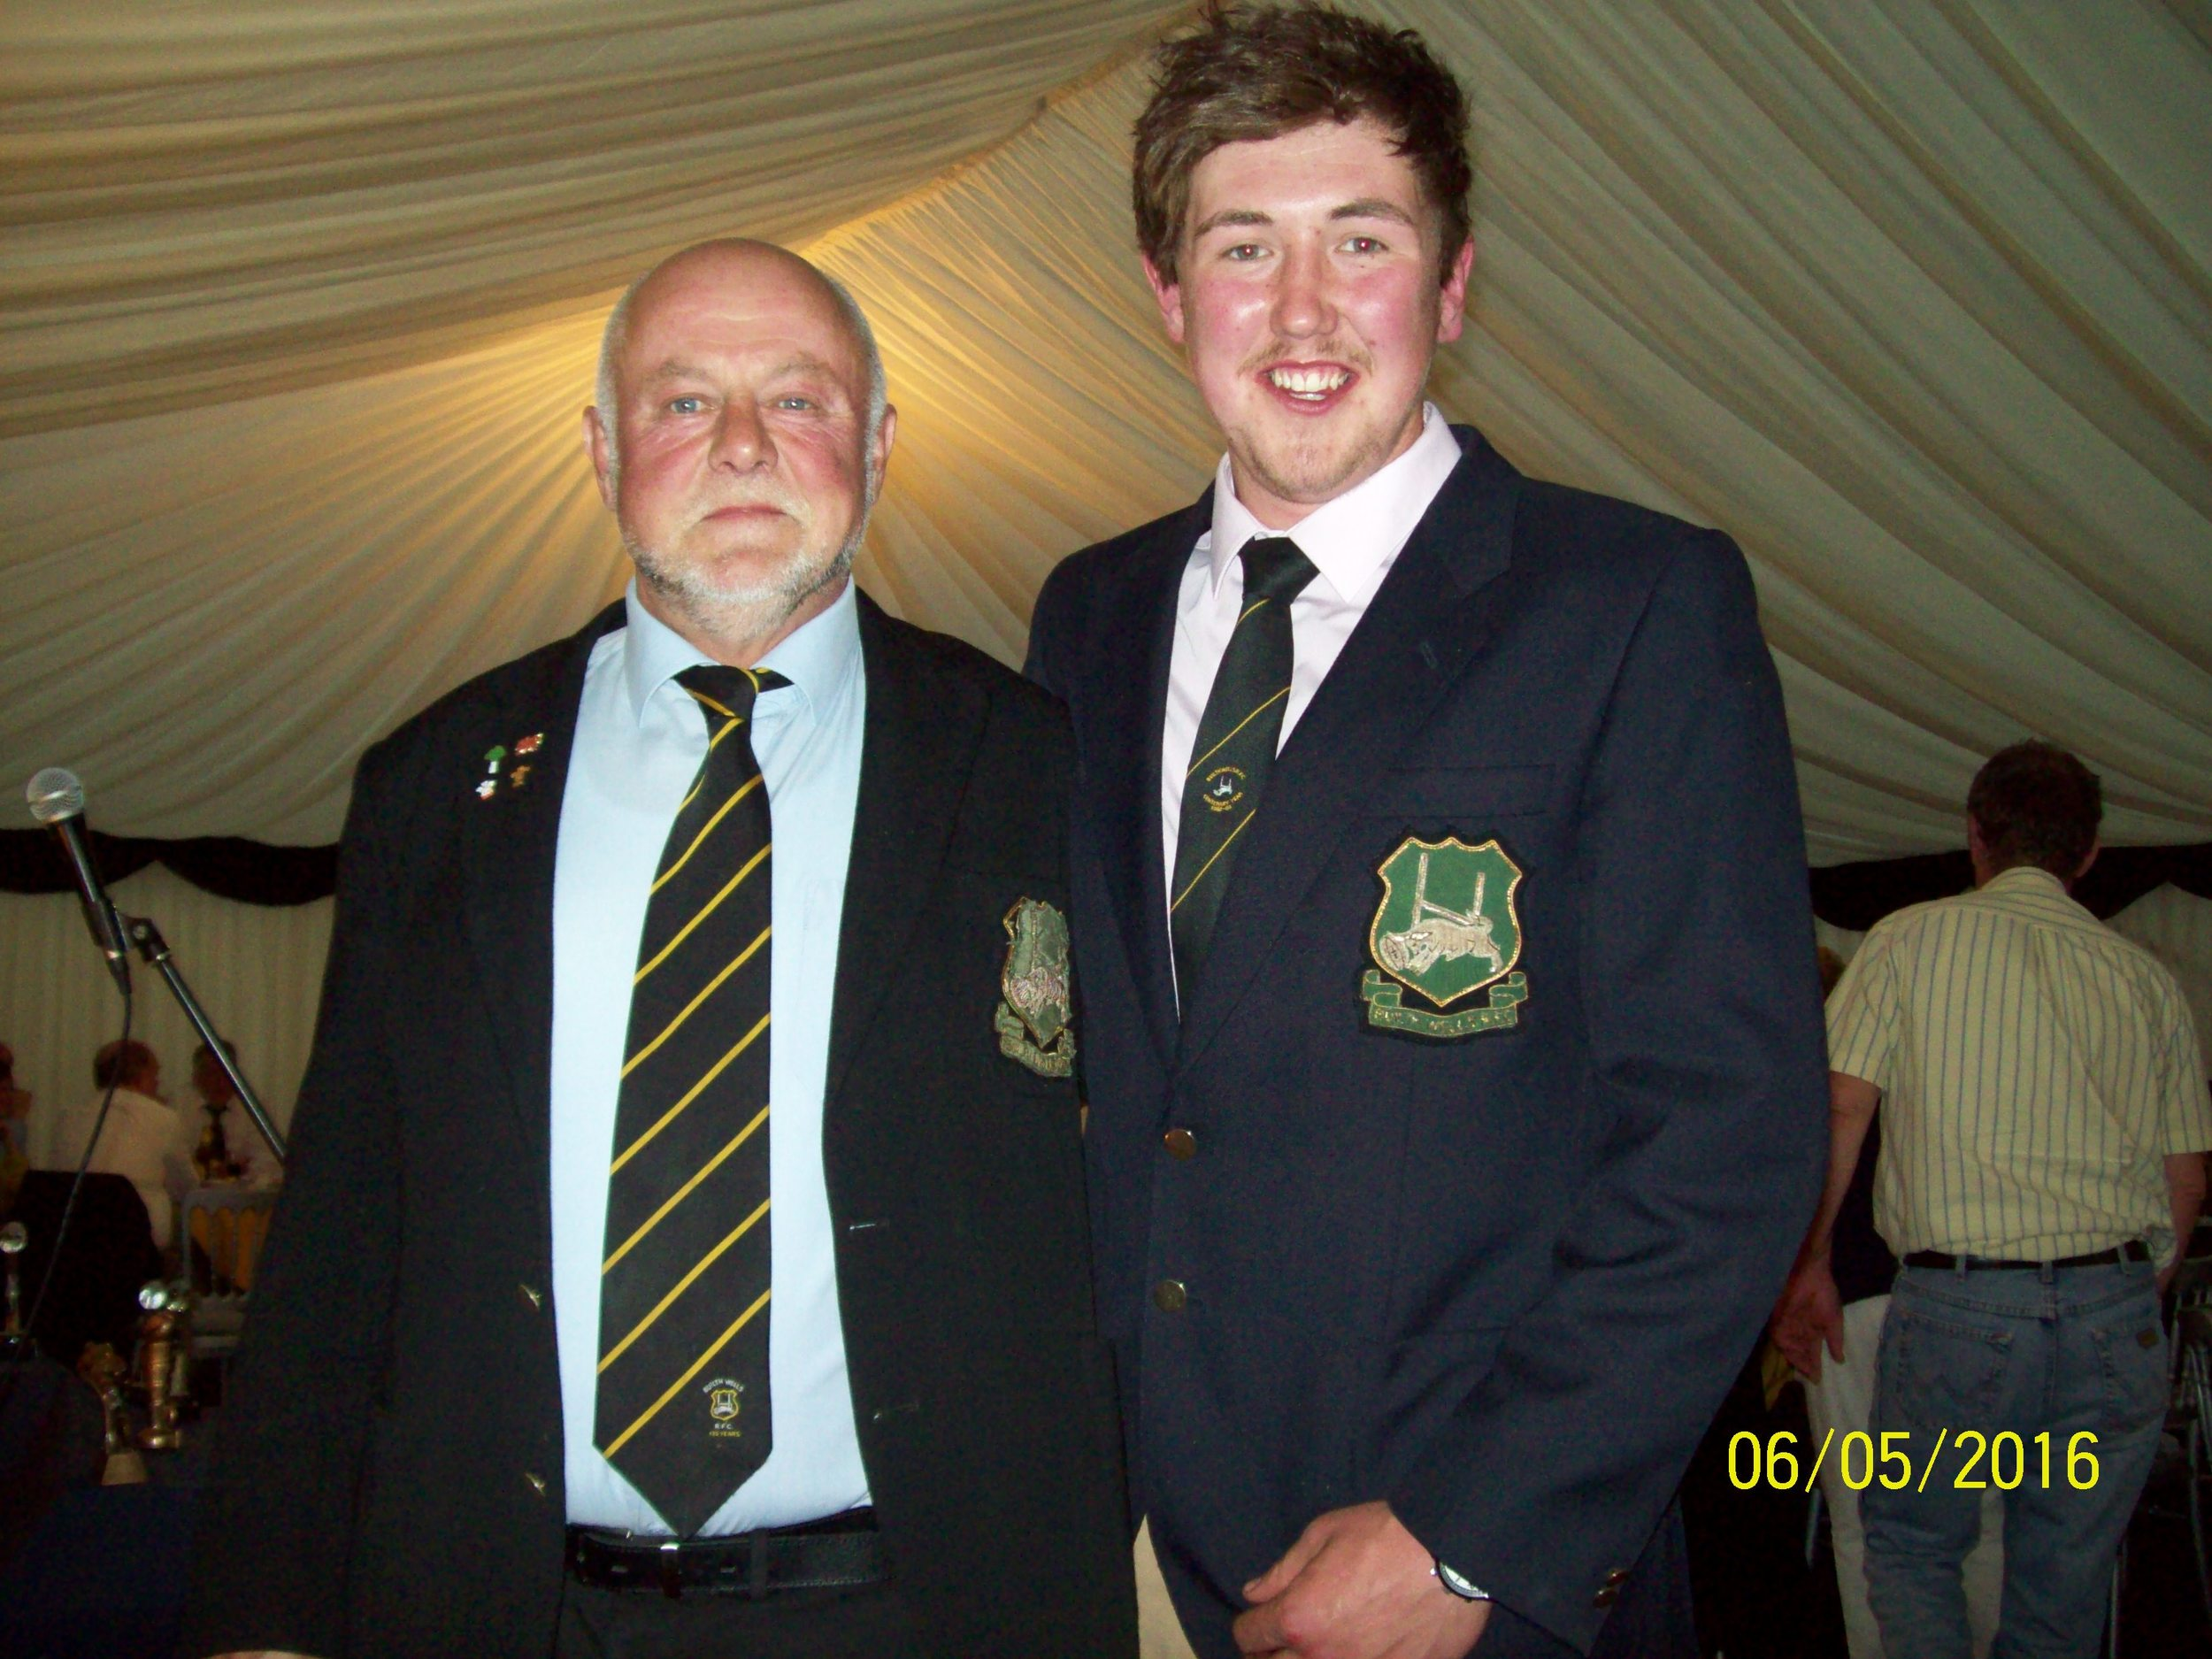 Mike Price (President) with 1st XV player Ashley Mills showing off club blazers at the awards dinner